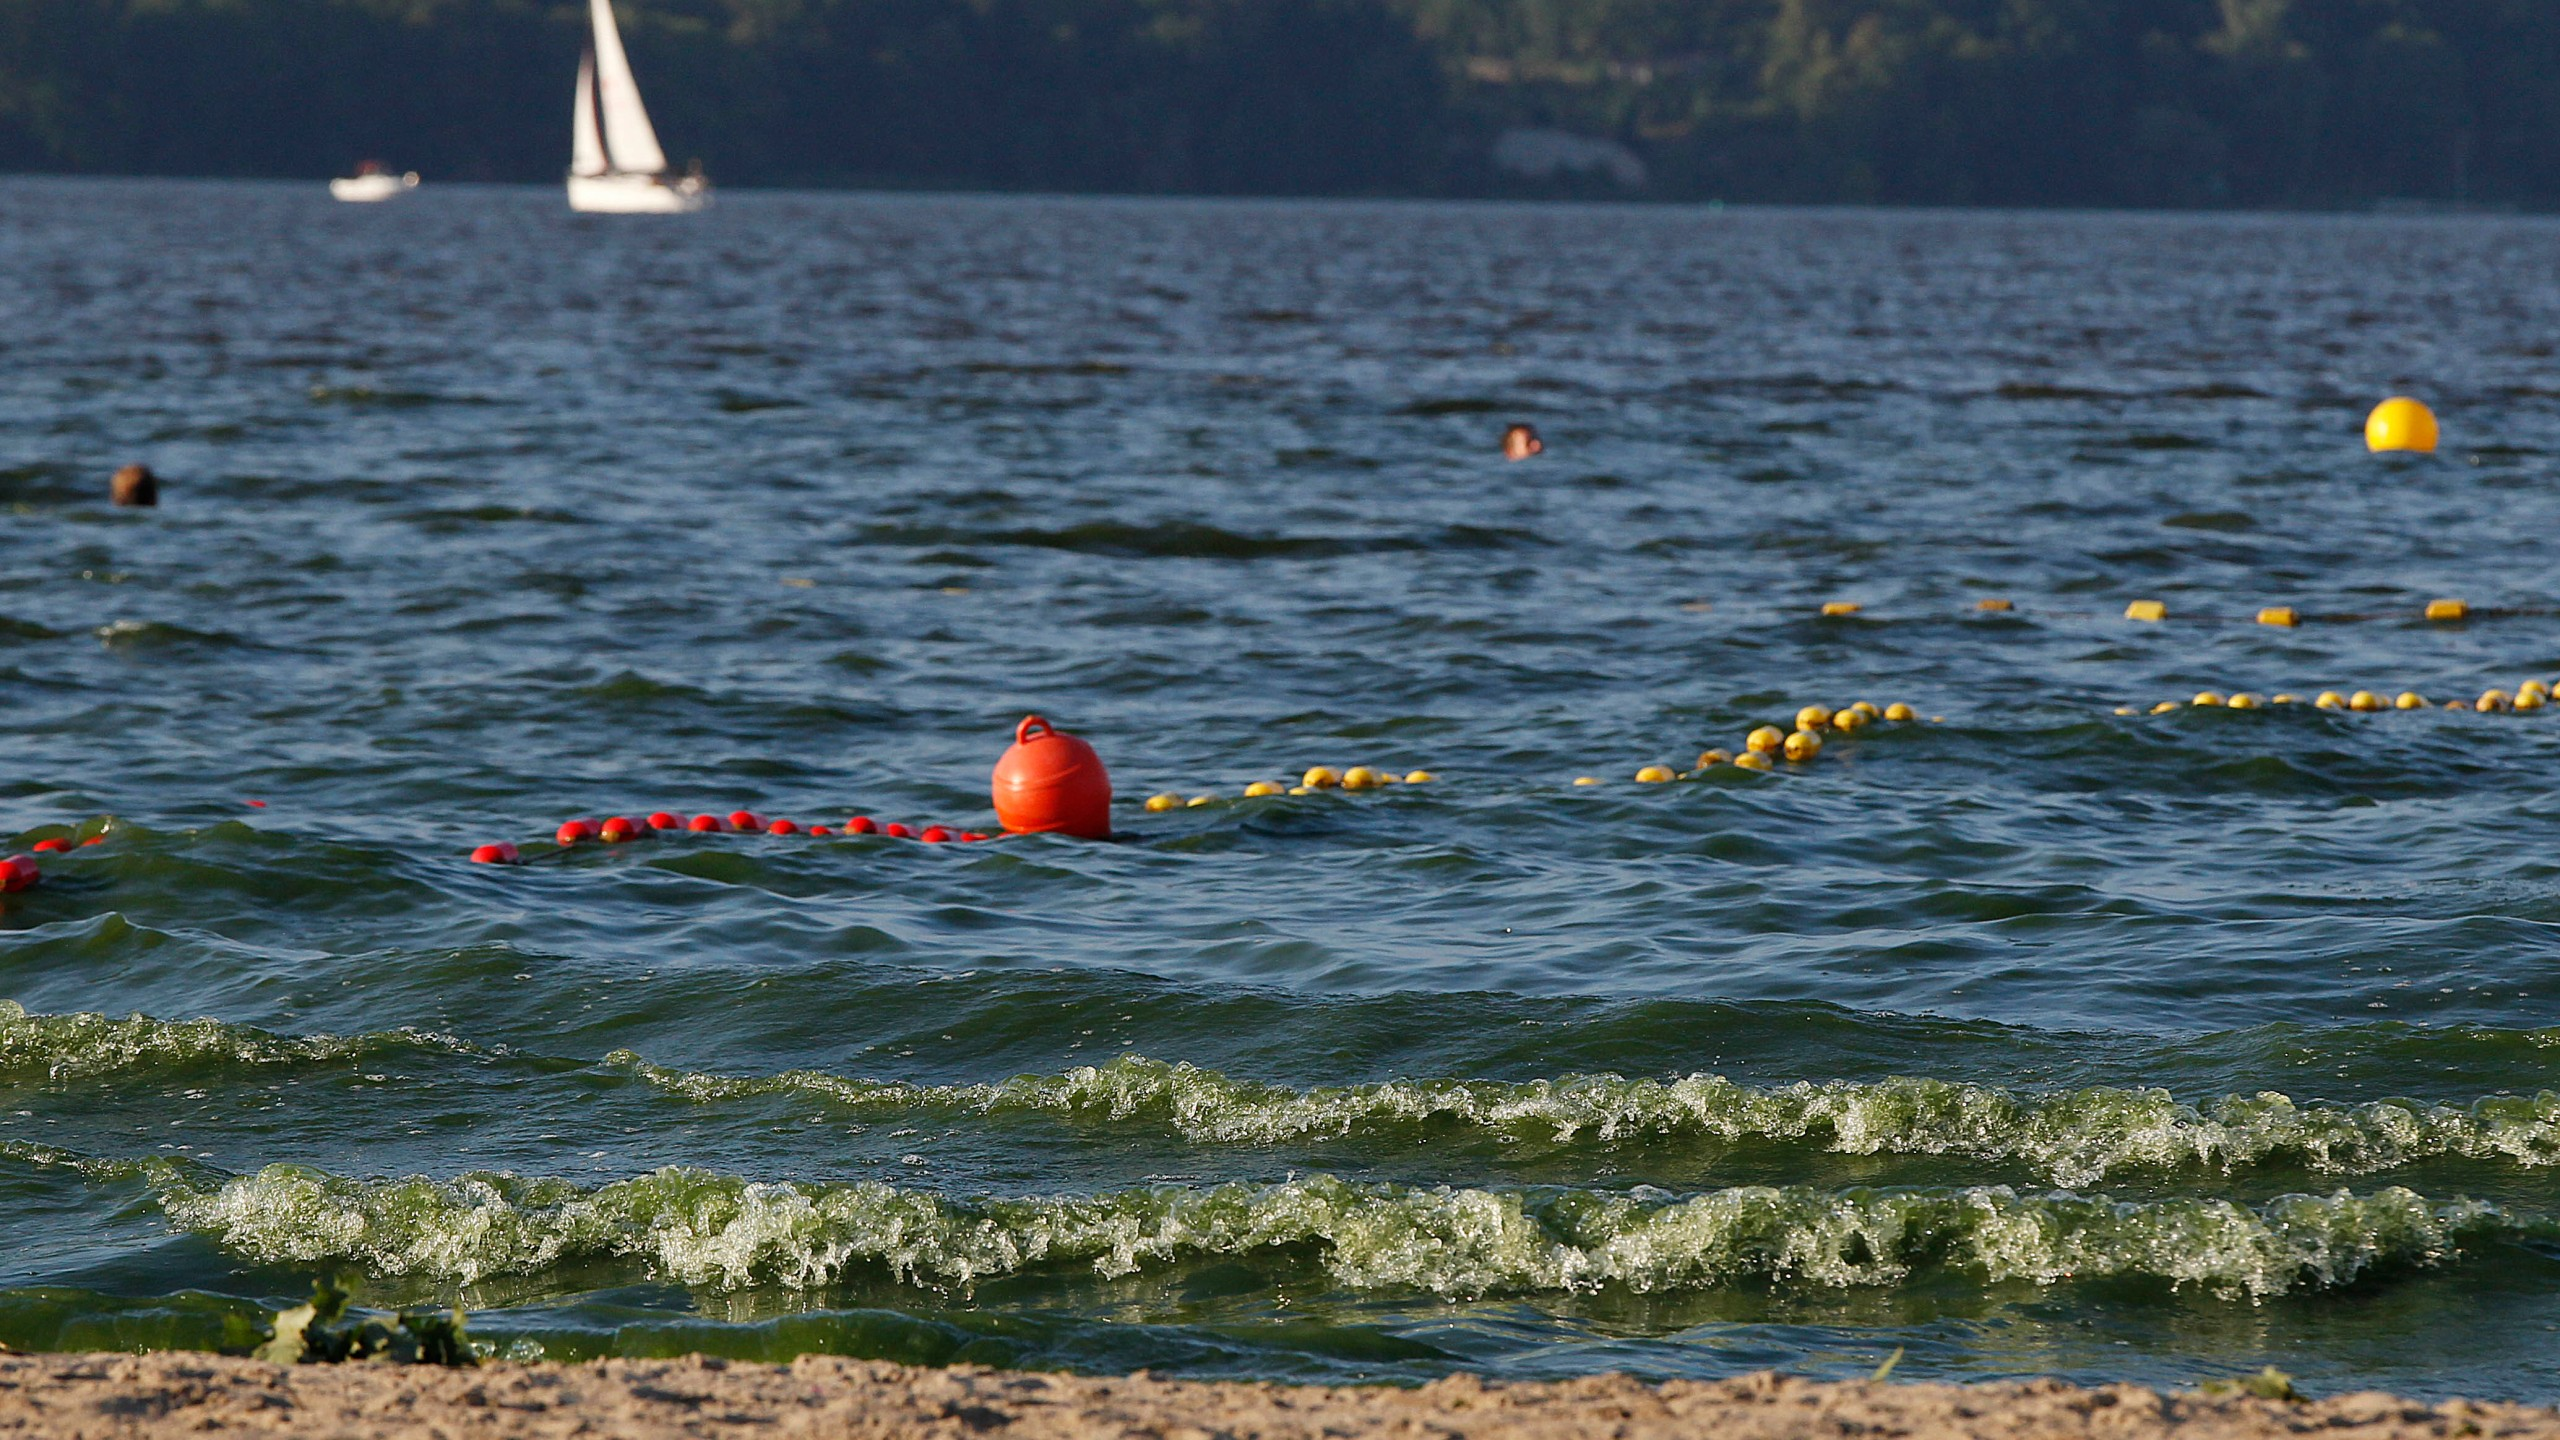 Poland_Algae_Blooms_49594-159532.jpg53149570